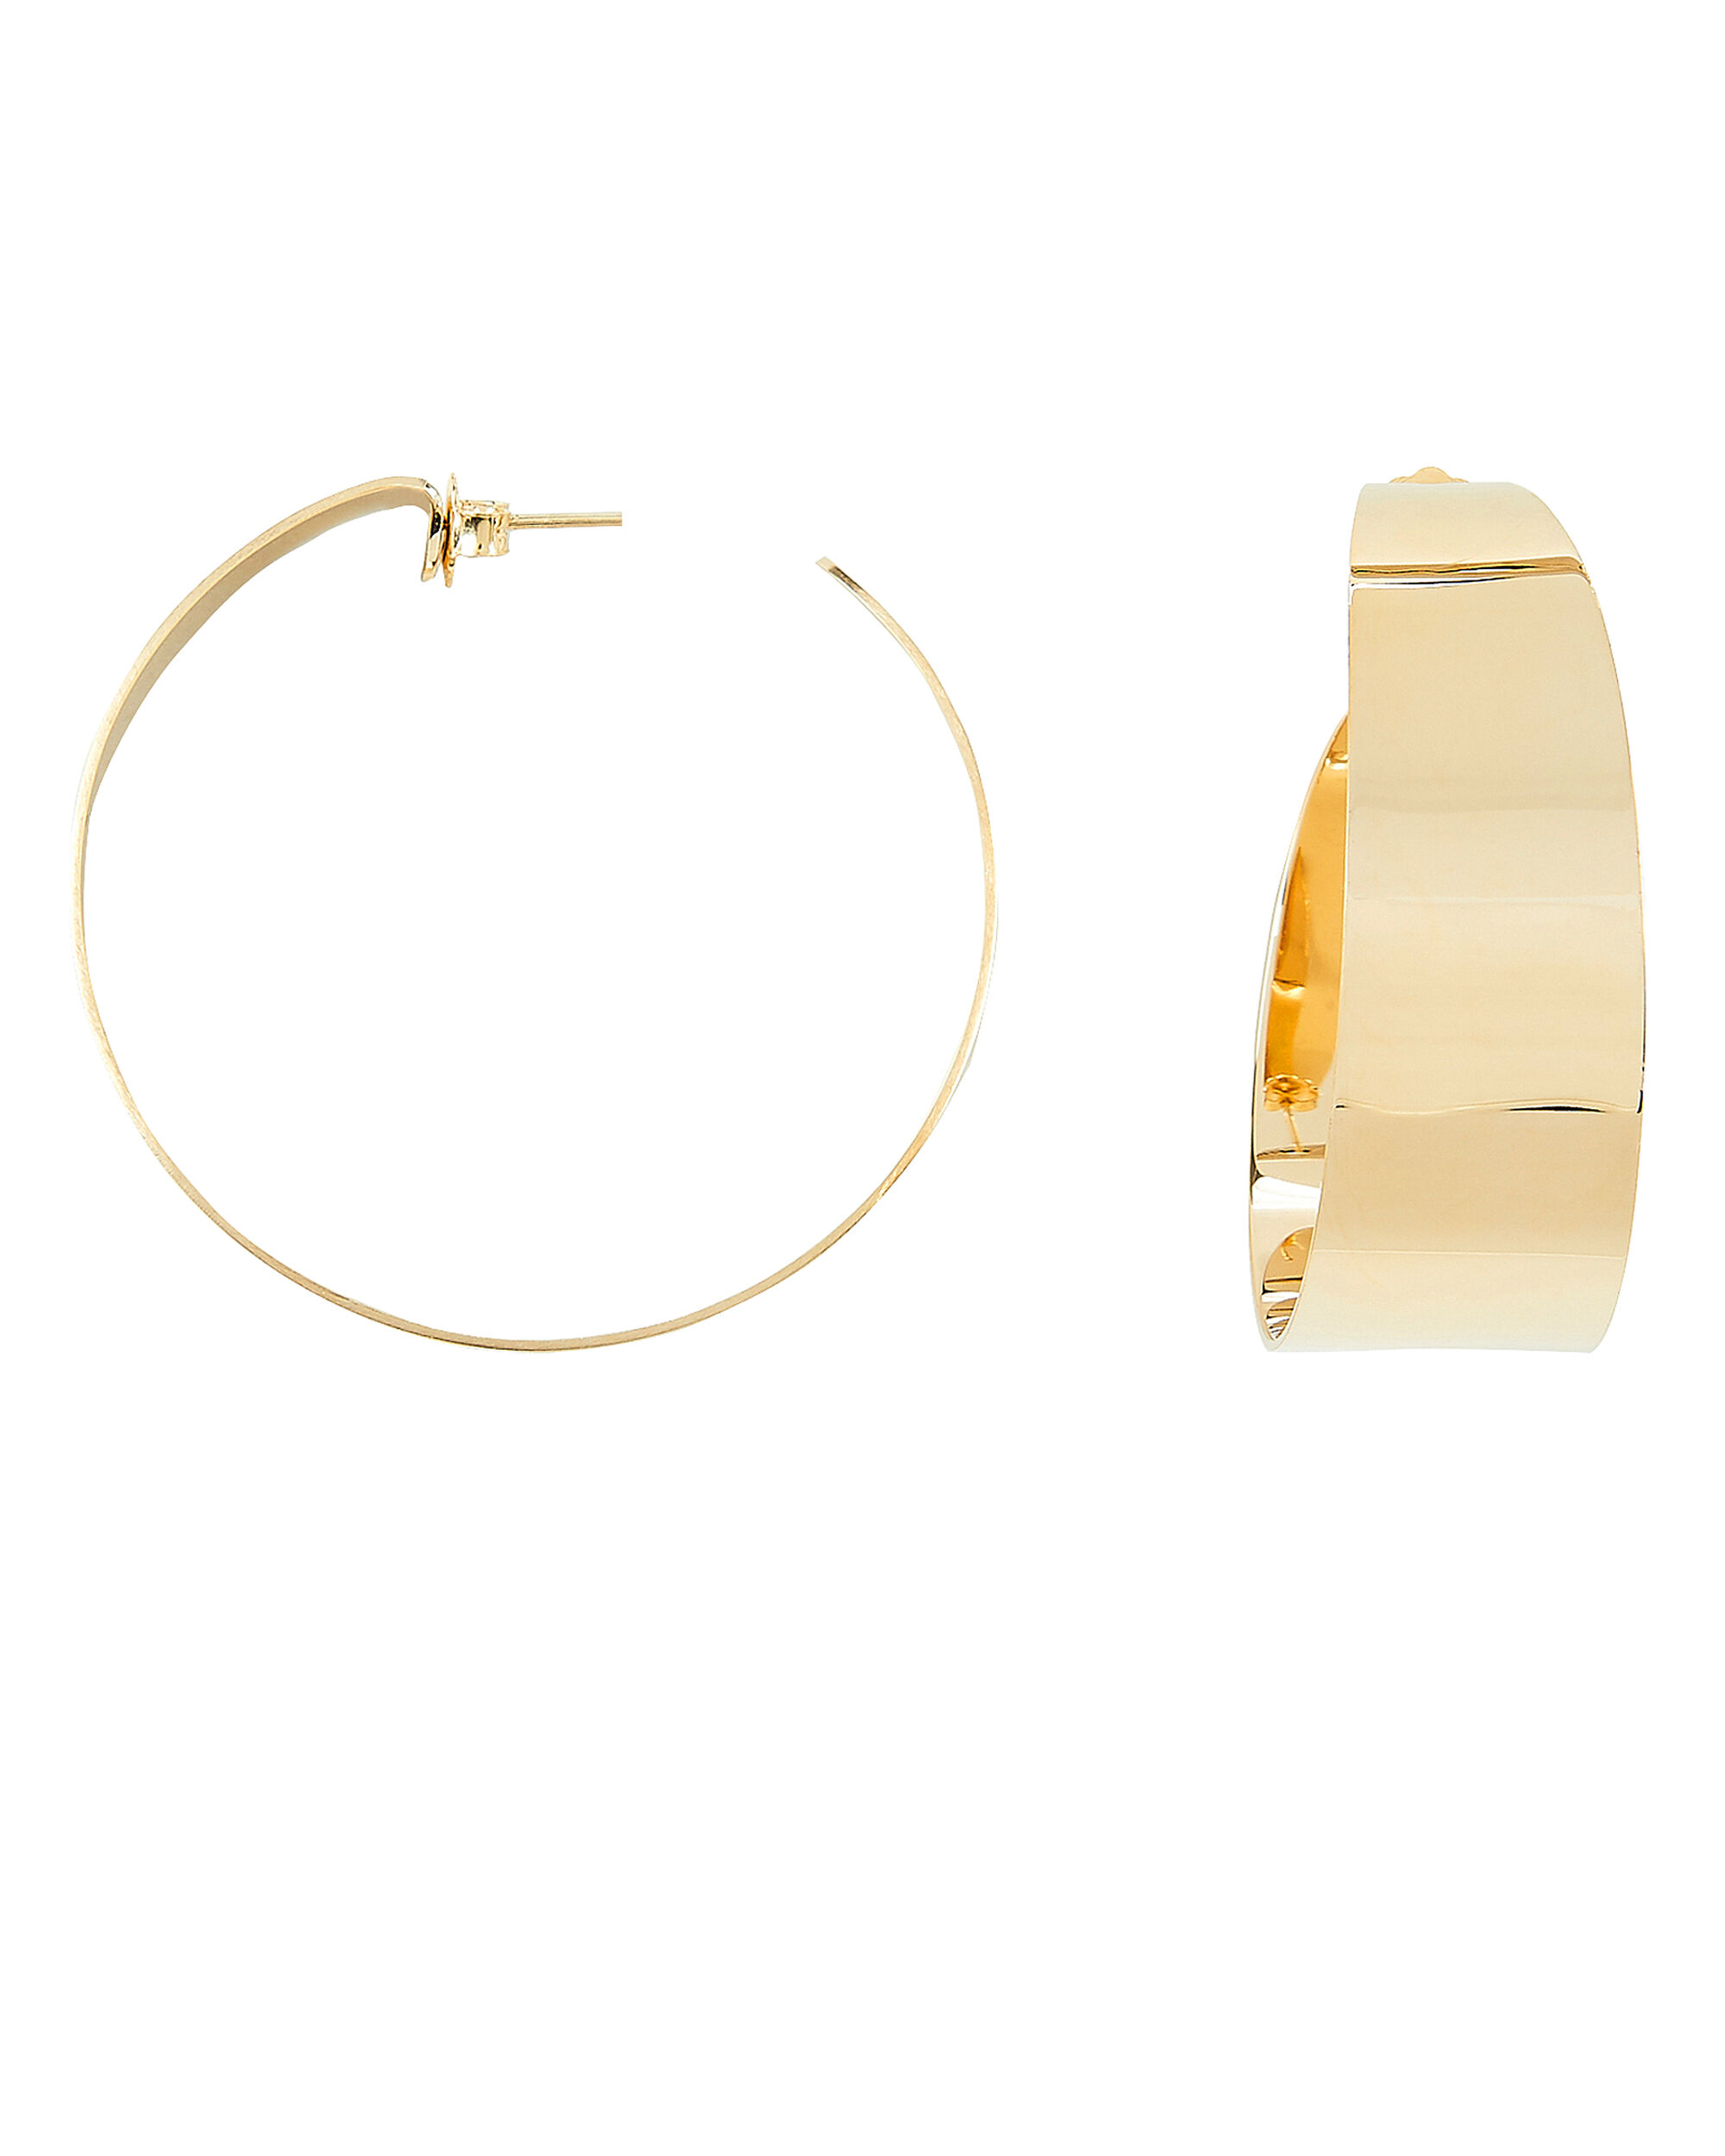 Sandra Hoop Earrings, GOLD, hi-res